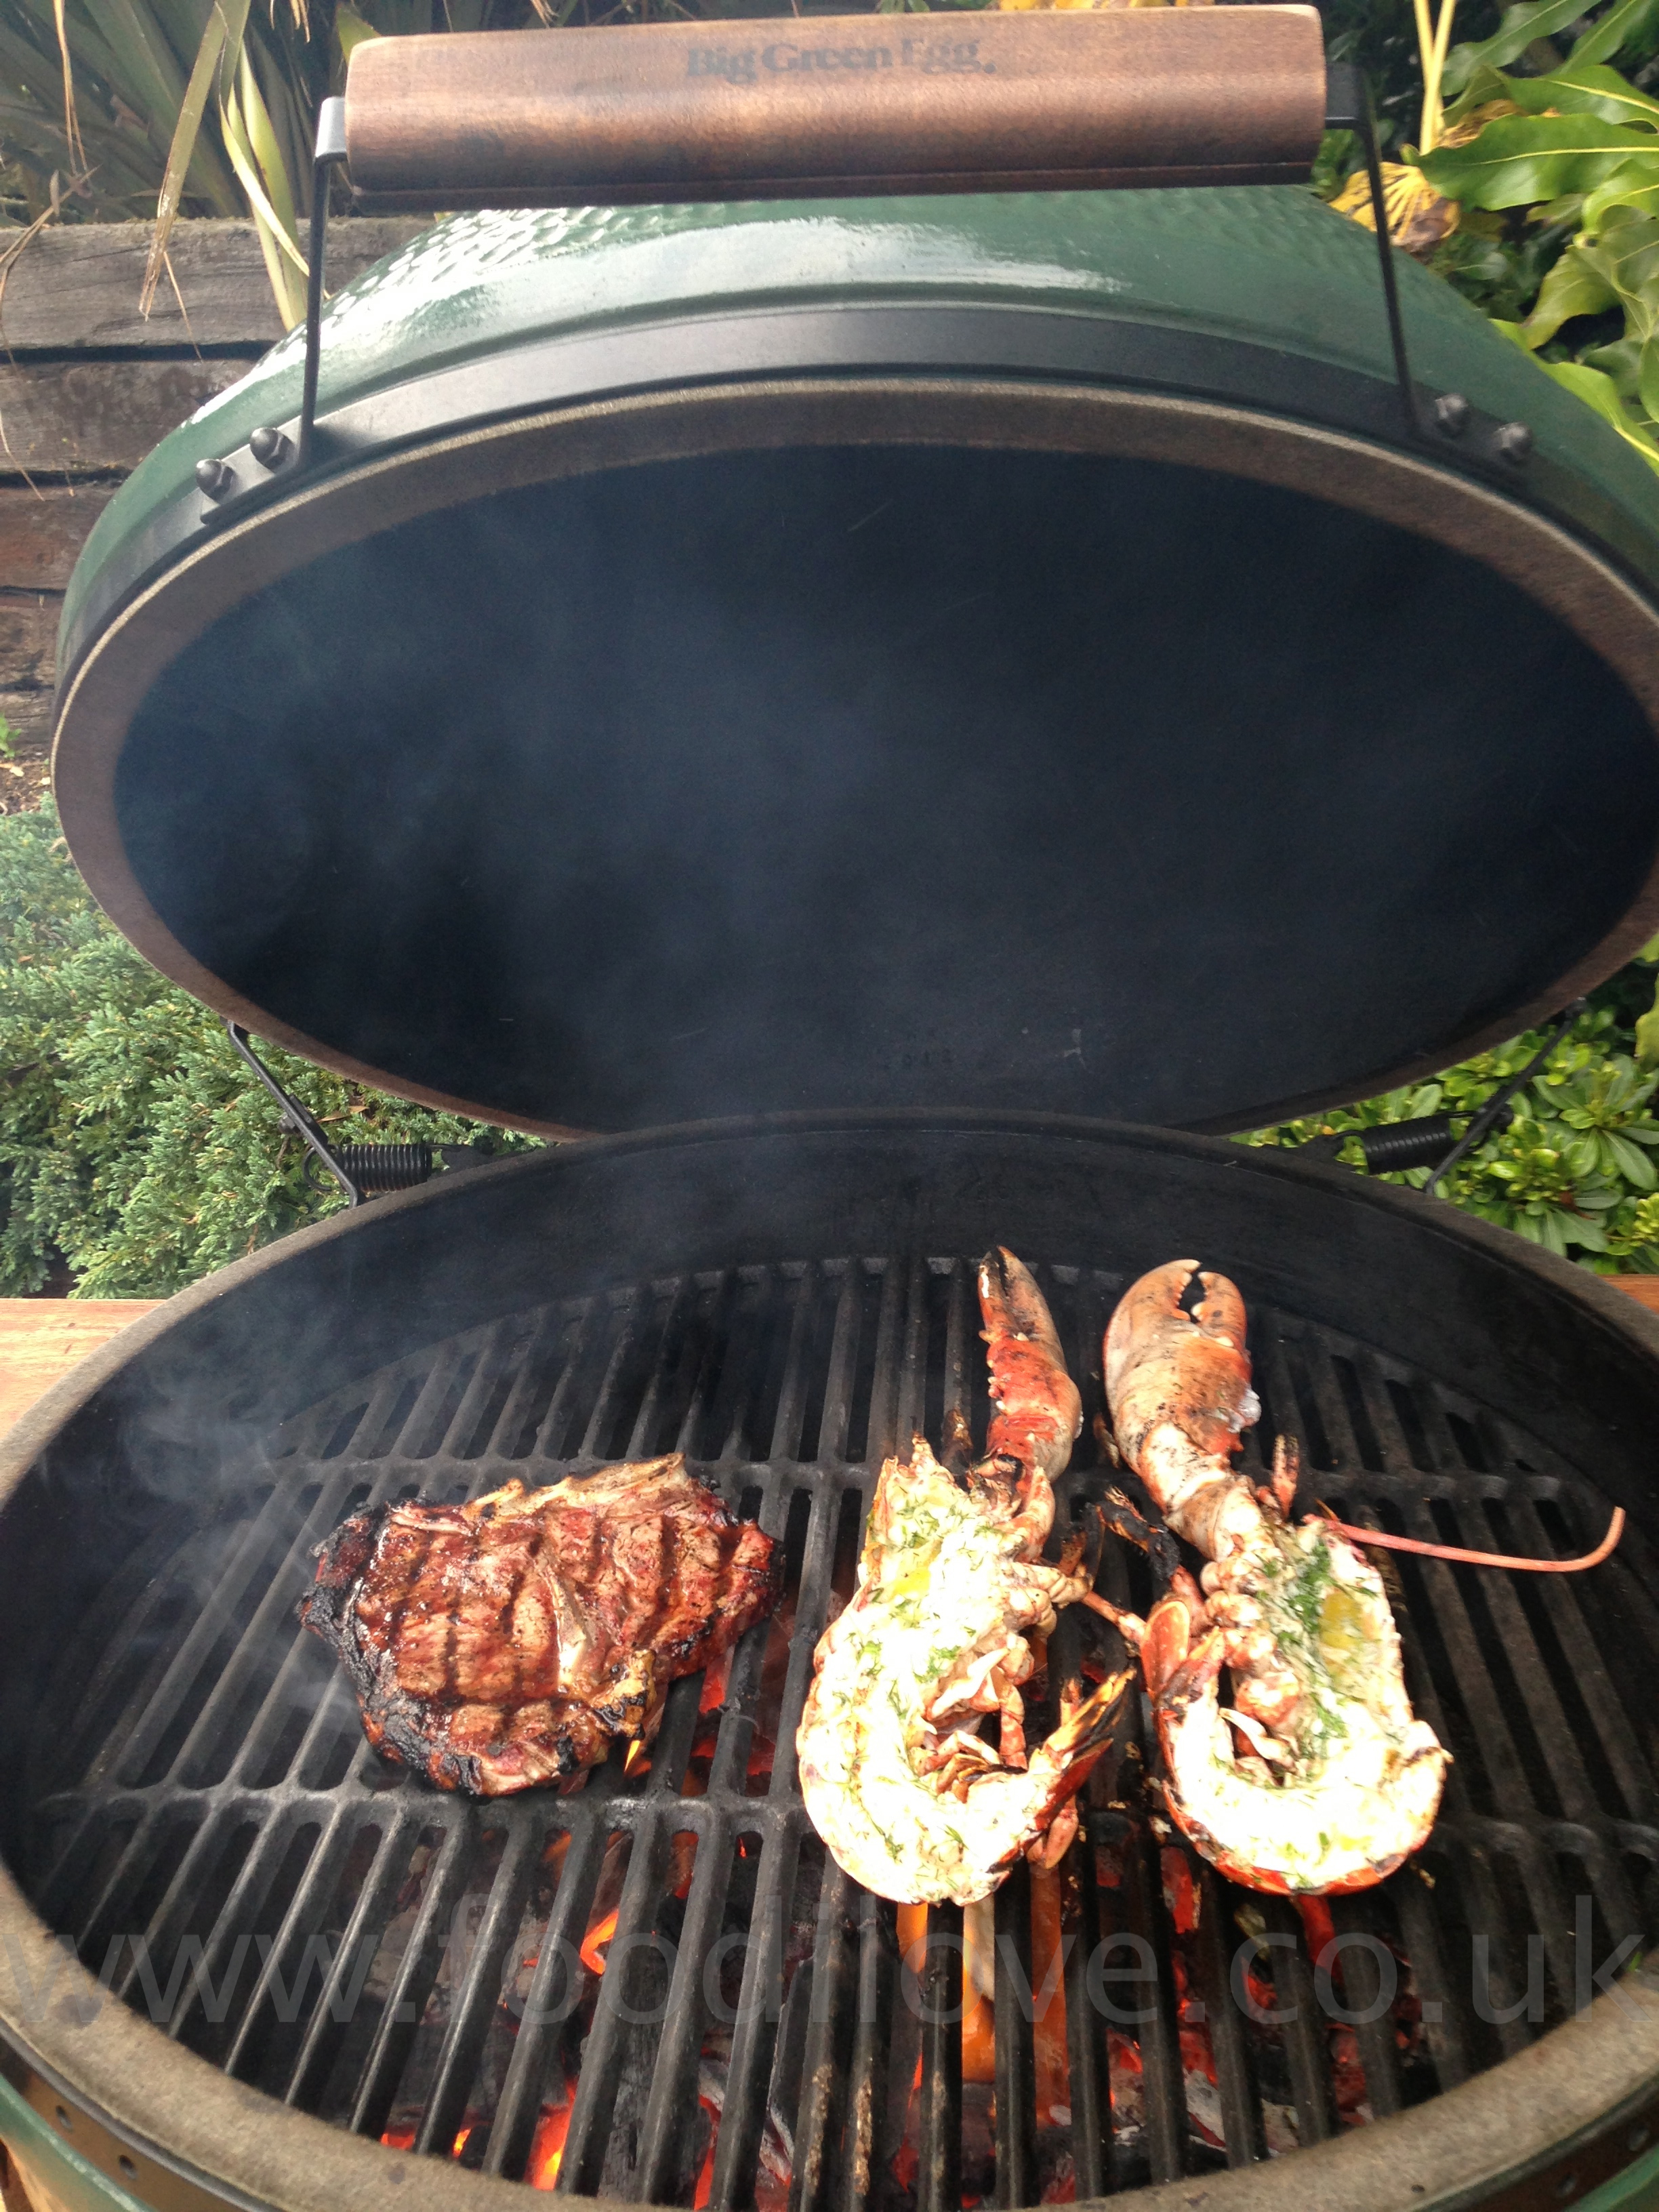 Lobster & T-Bone steak on the Braai/BigGreenEgg